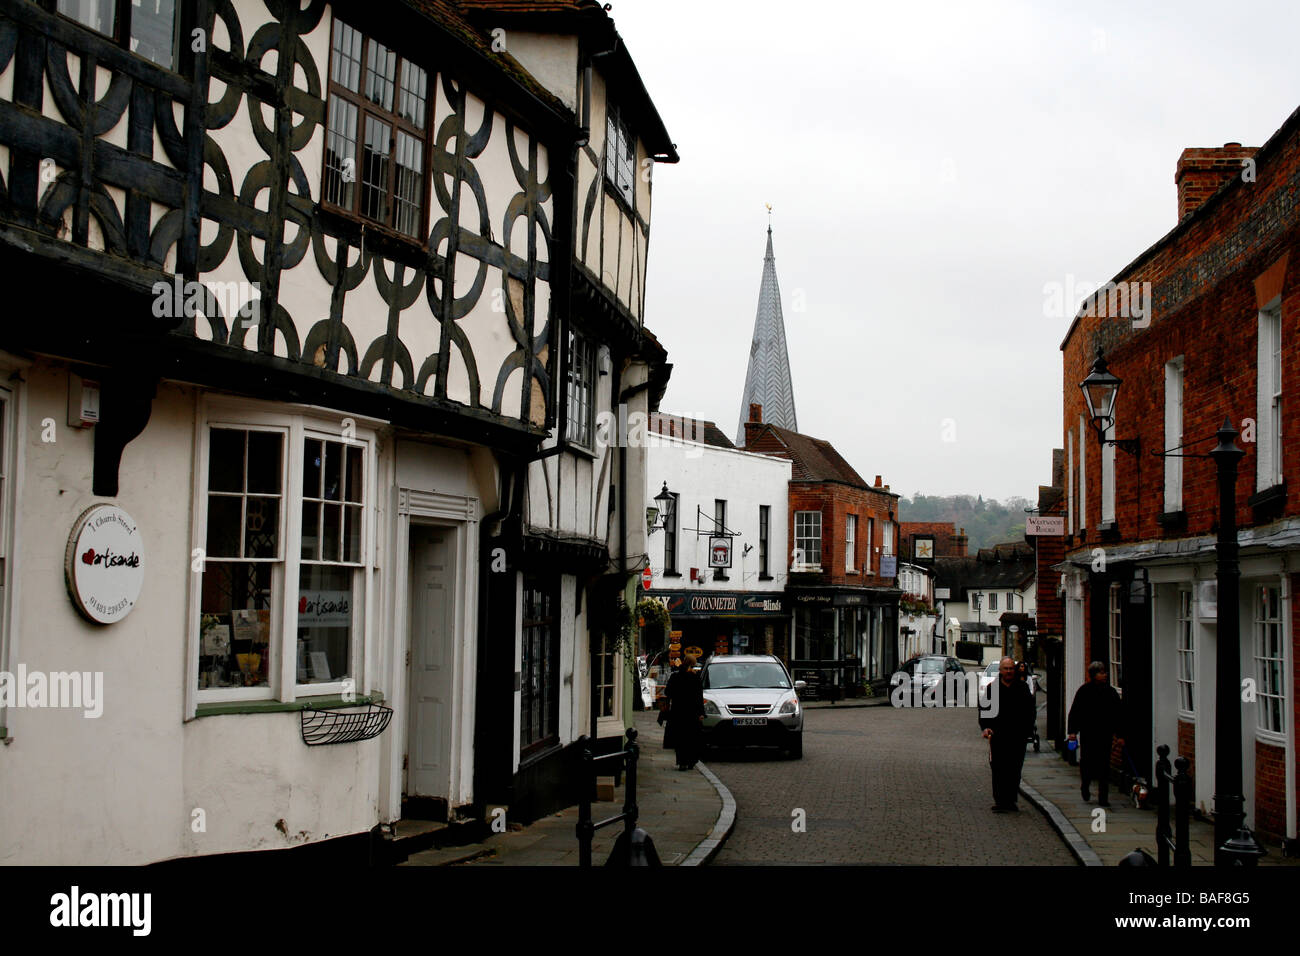 godalming town county of surrey south of england uk - Stock Image